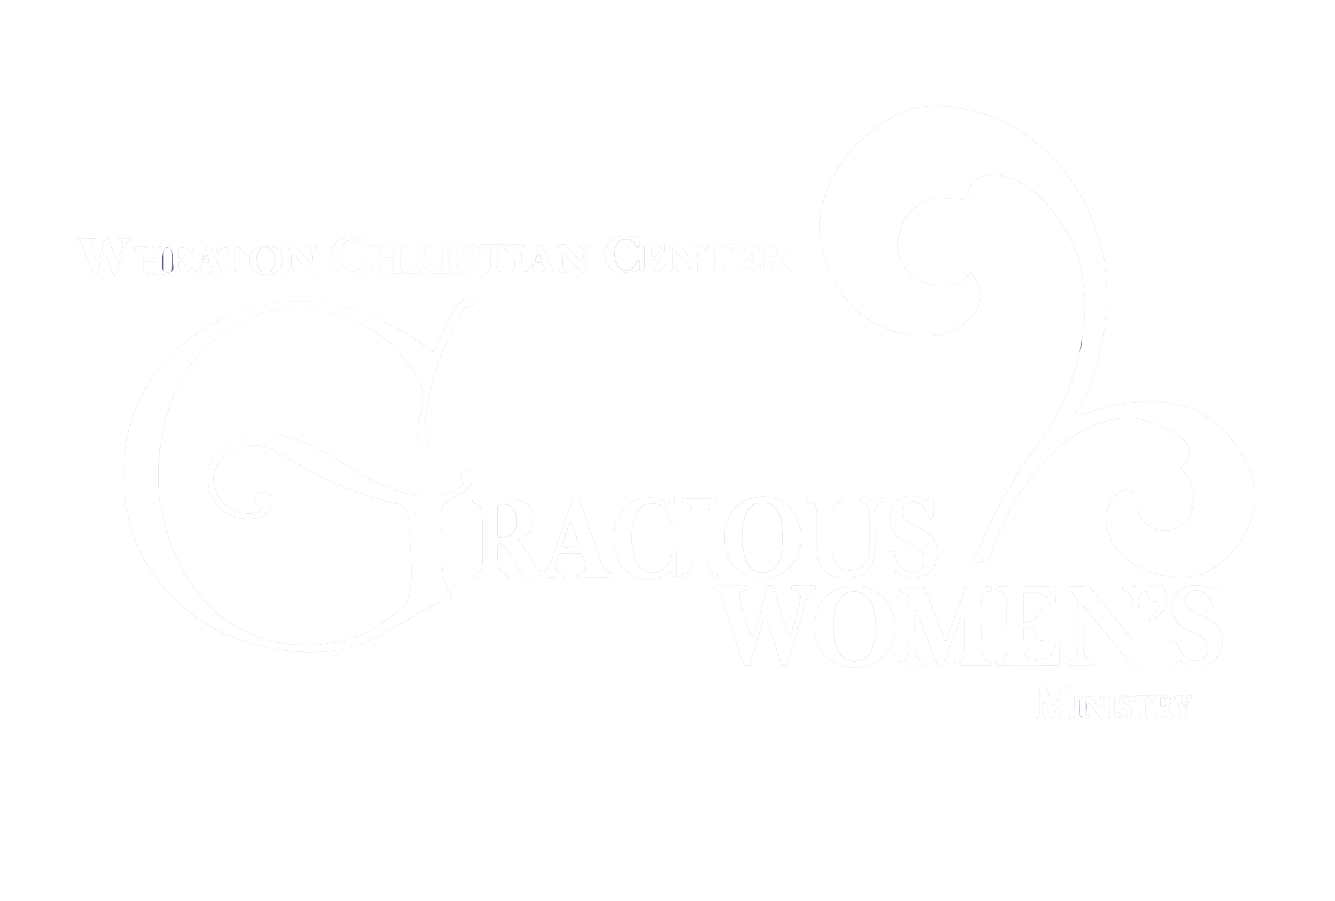 Gracious Women's Ministry